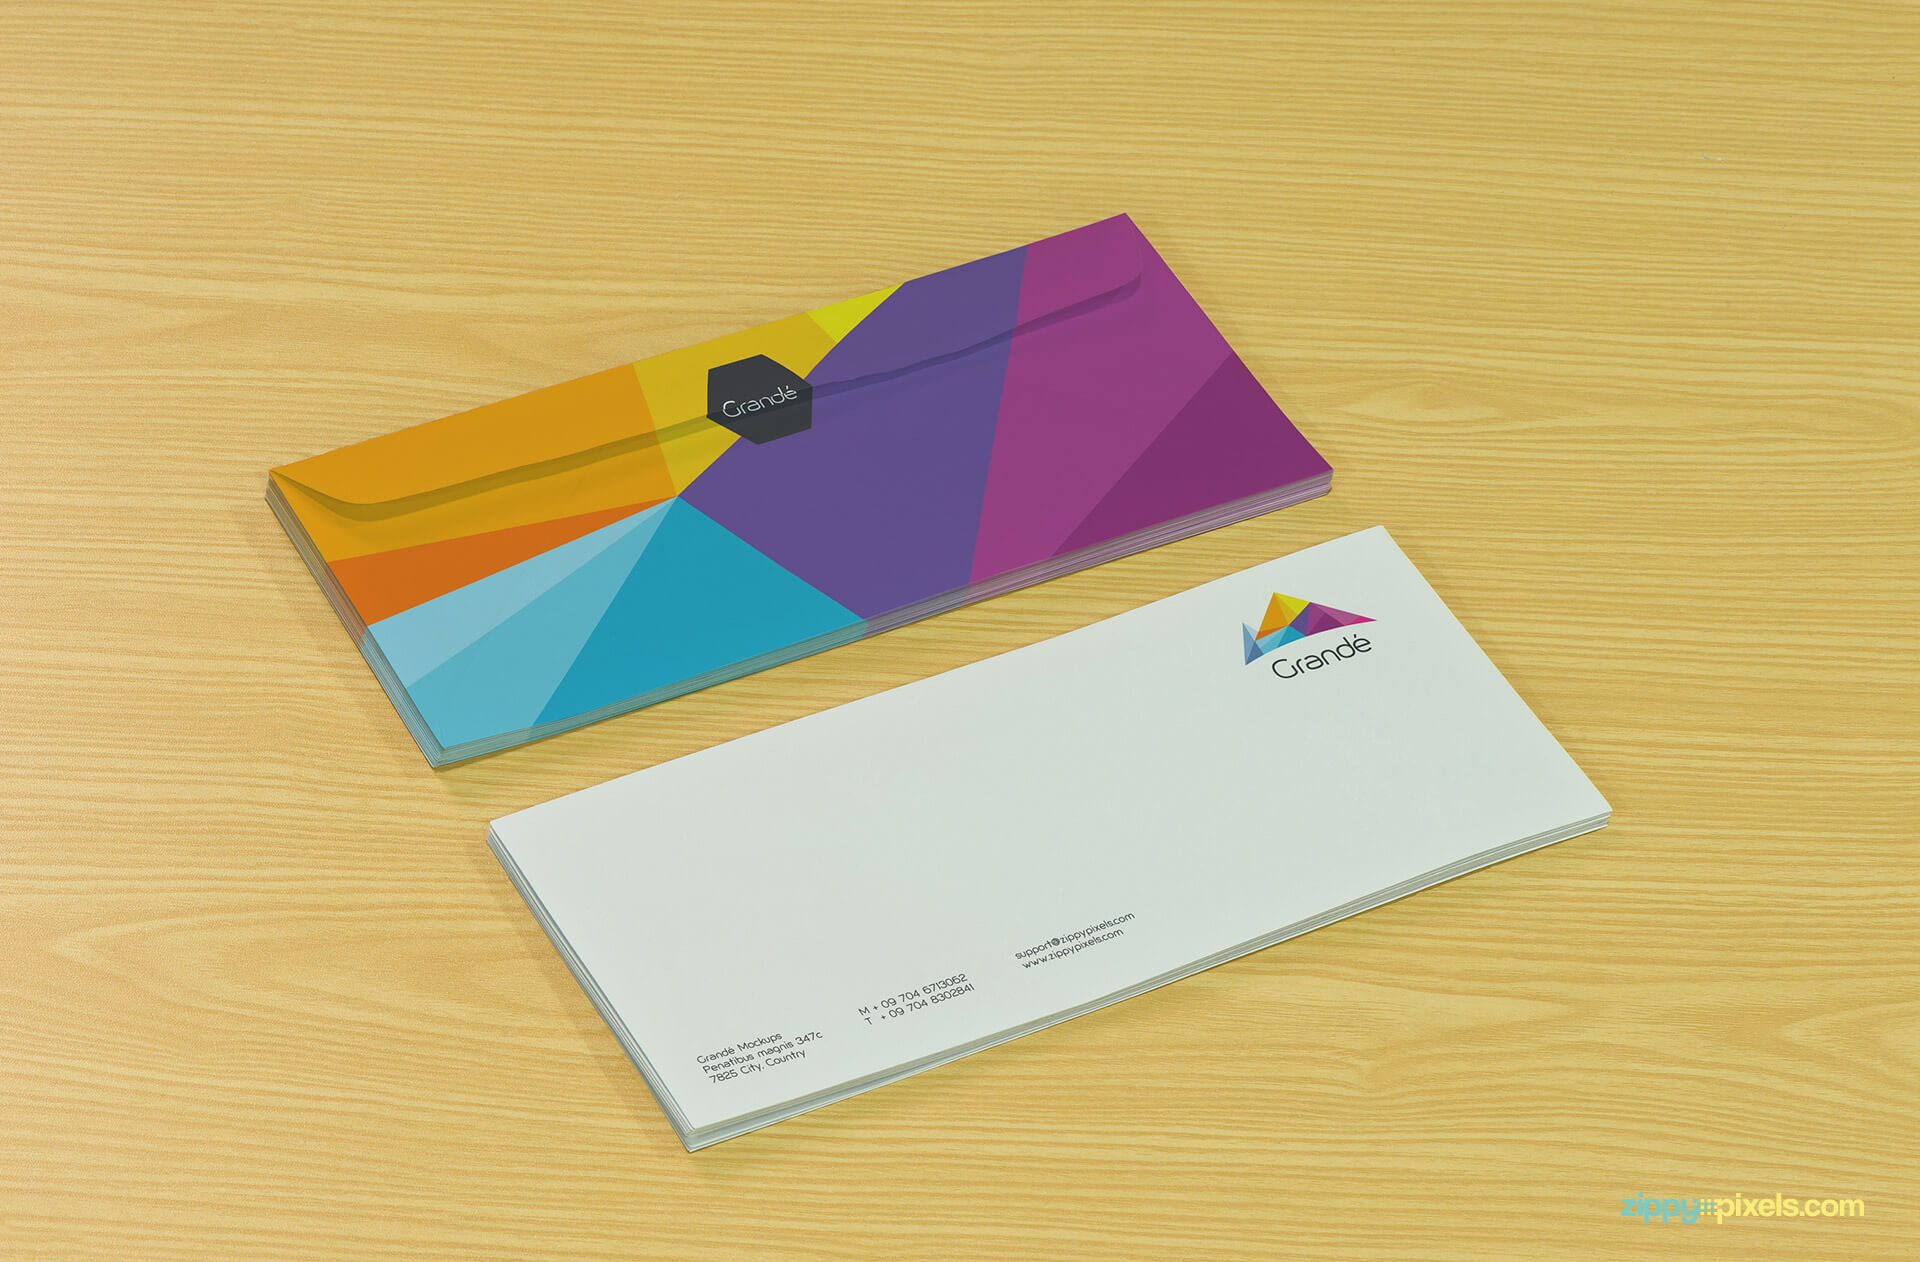 Branding Mockup of Two Envelopes